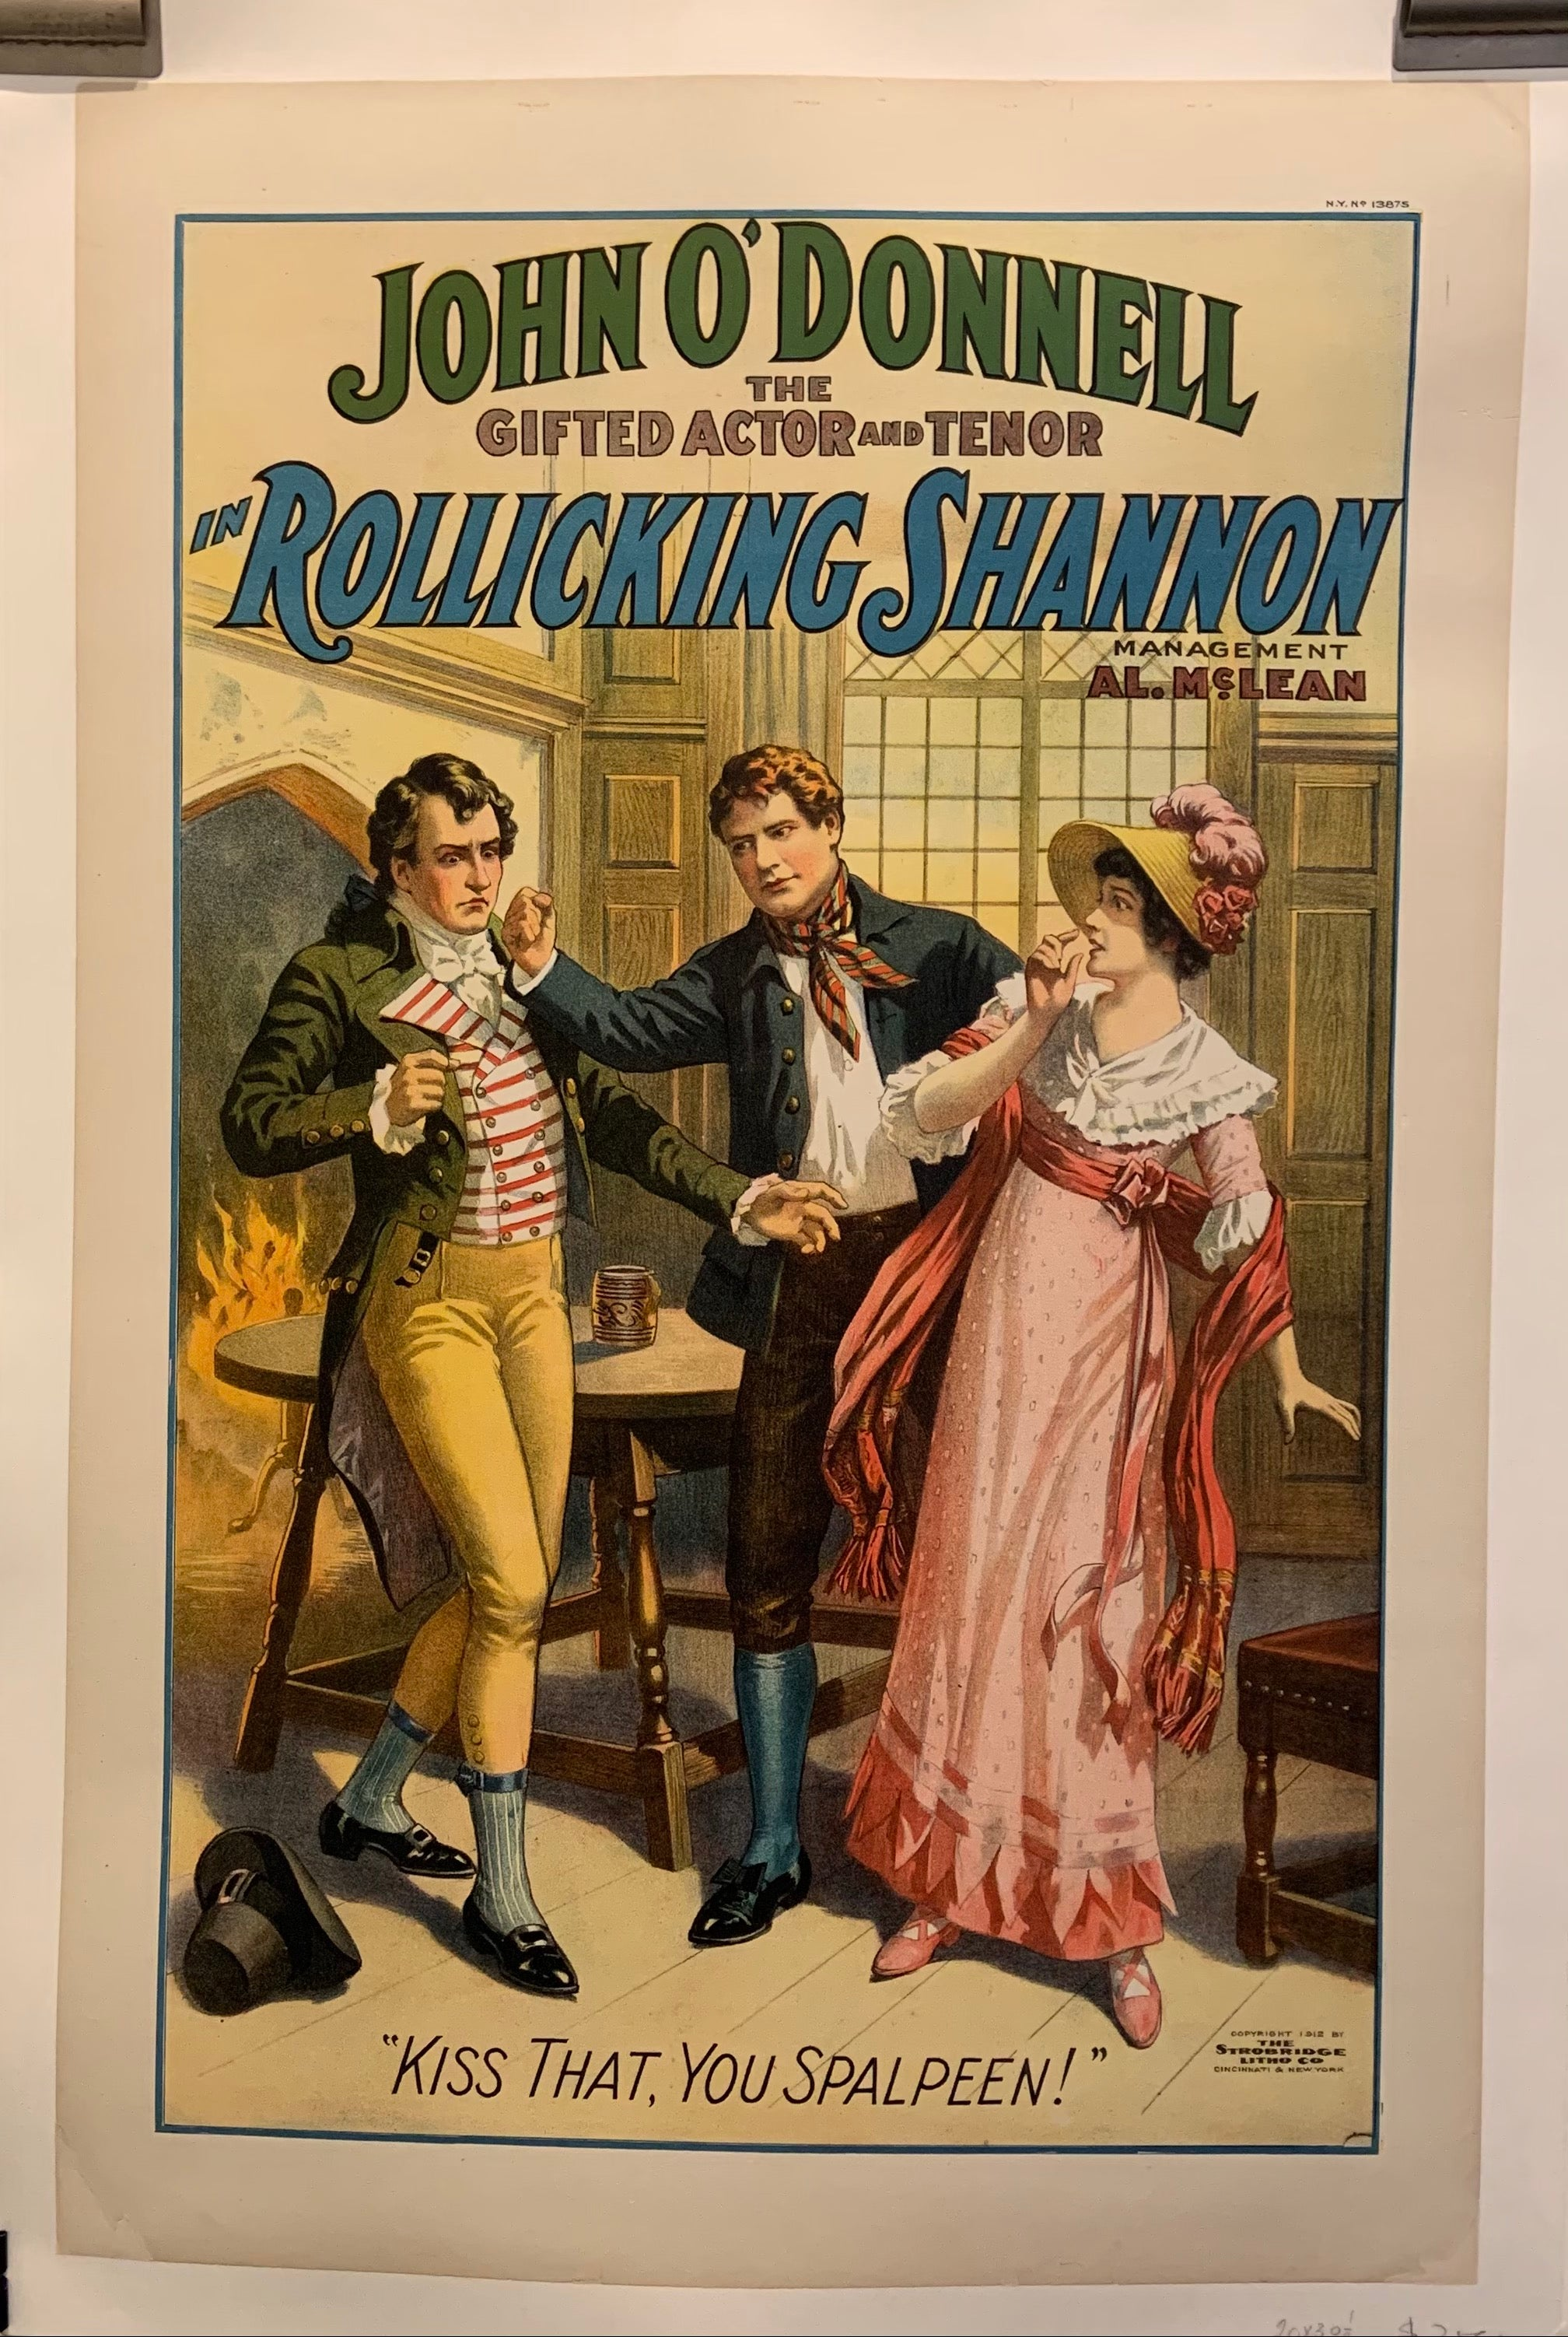 Rollicking Shannon Poster